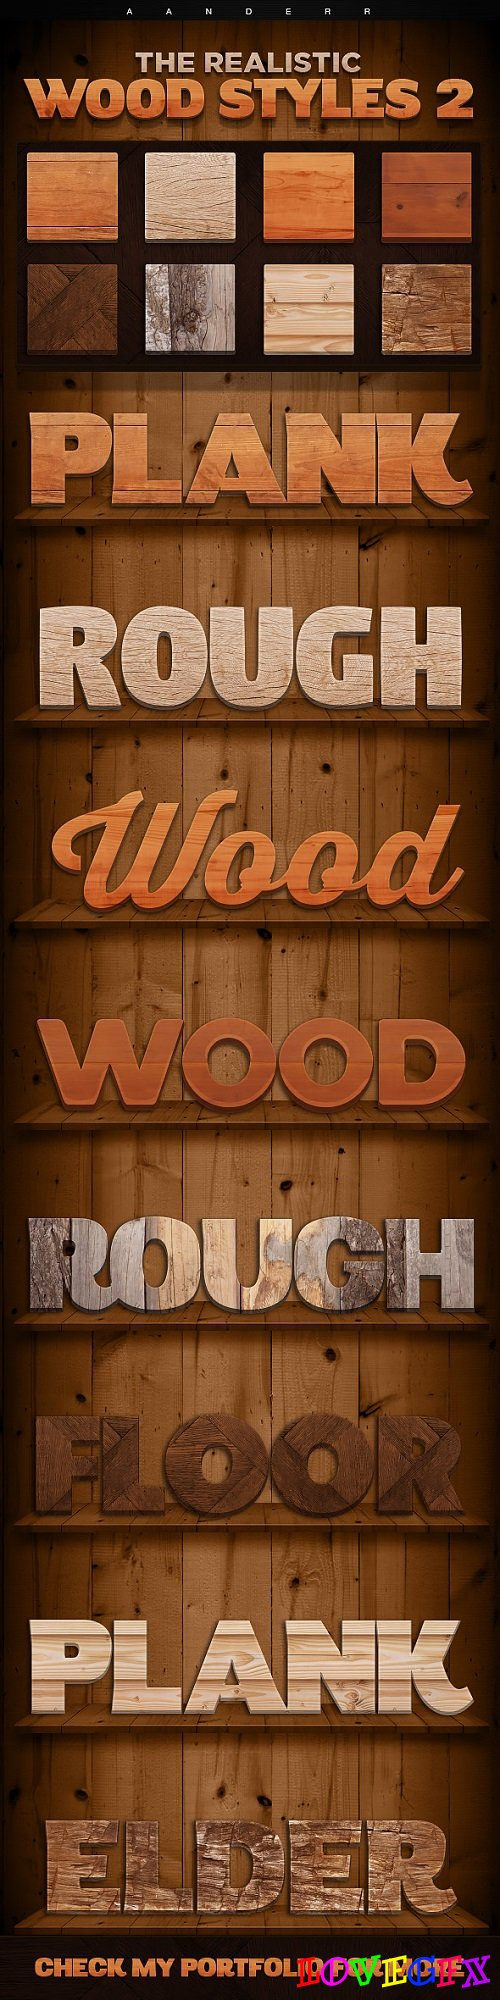 The Realistic Wood Styles 2 - 18006000